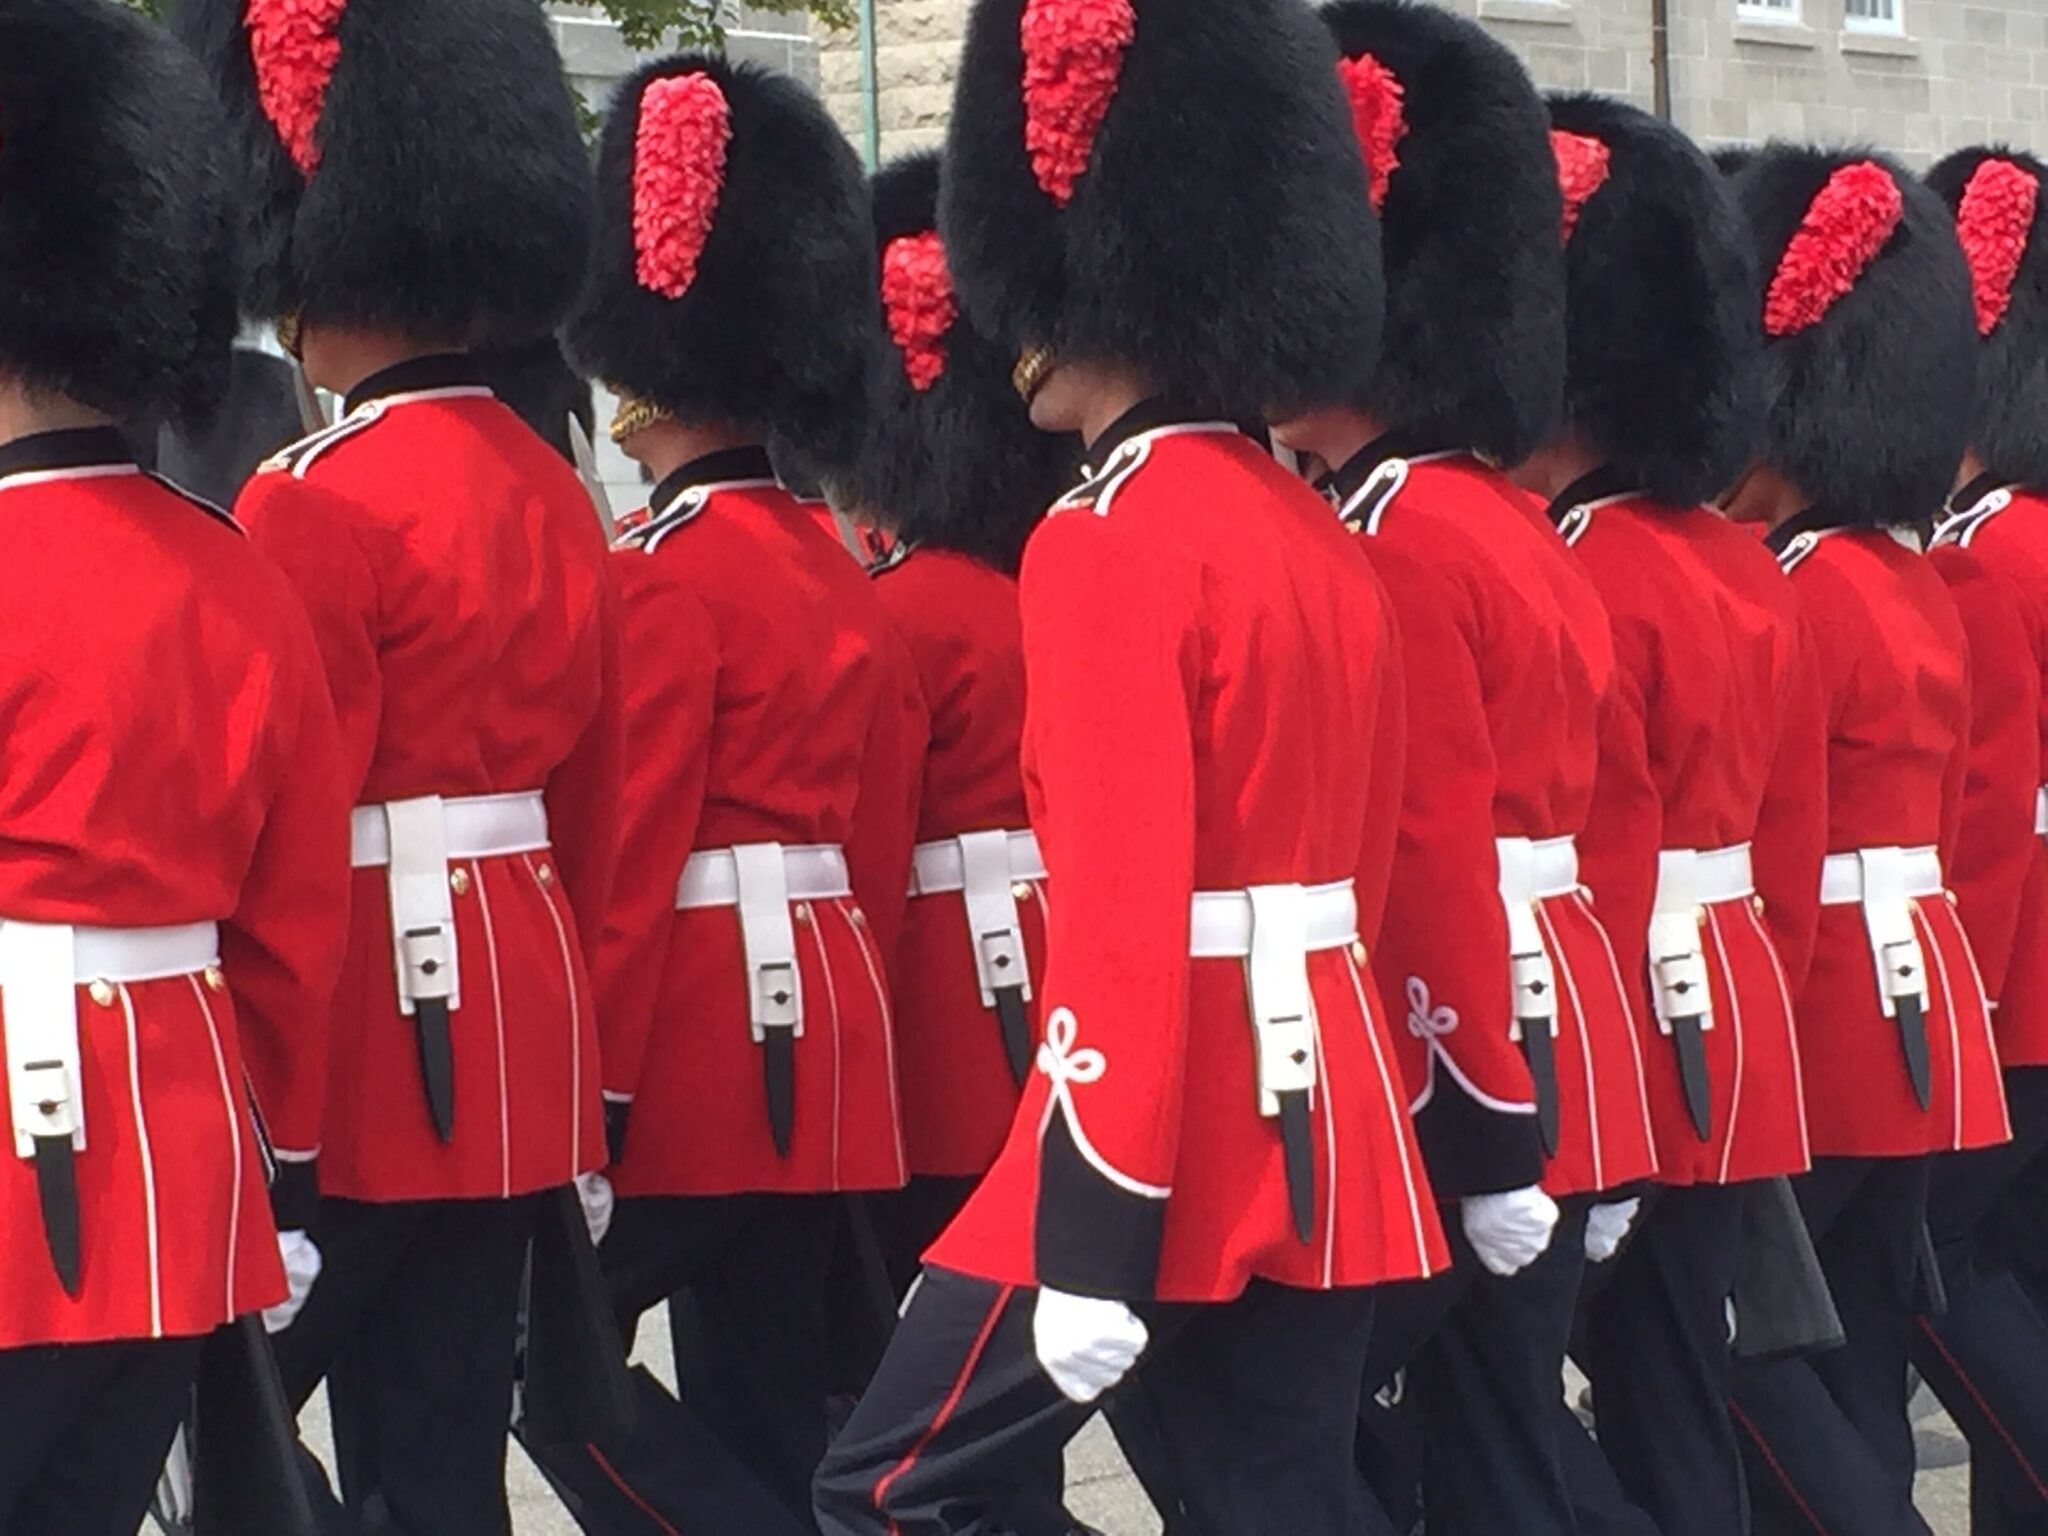 British Mania: Where to See the Royal Guard